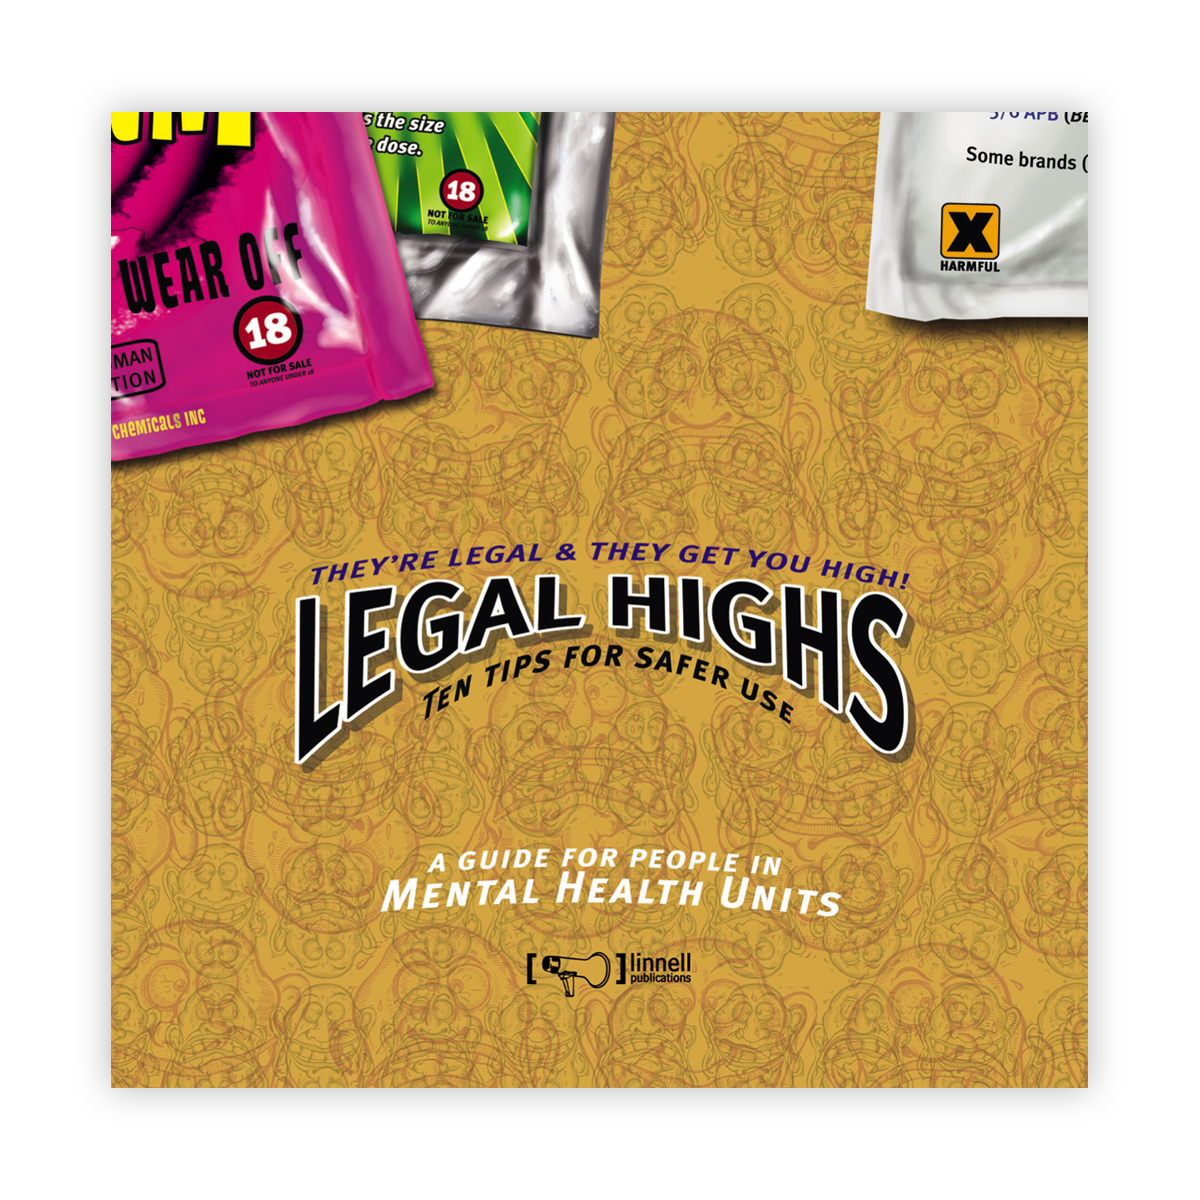 Legal Highs: a guide for people in mental health units – Being updated